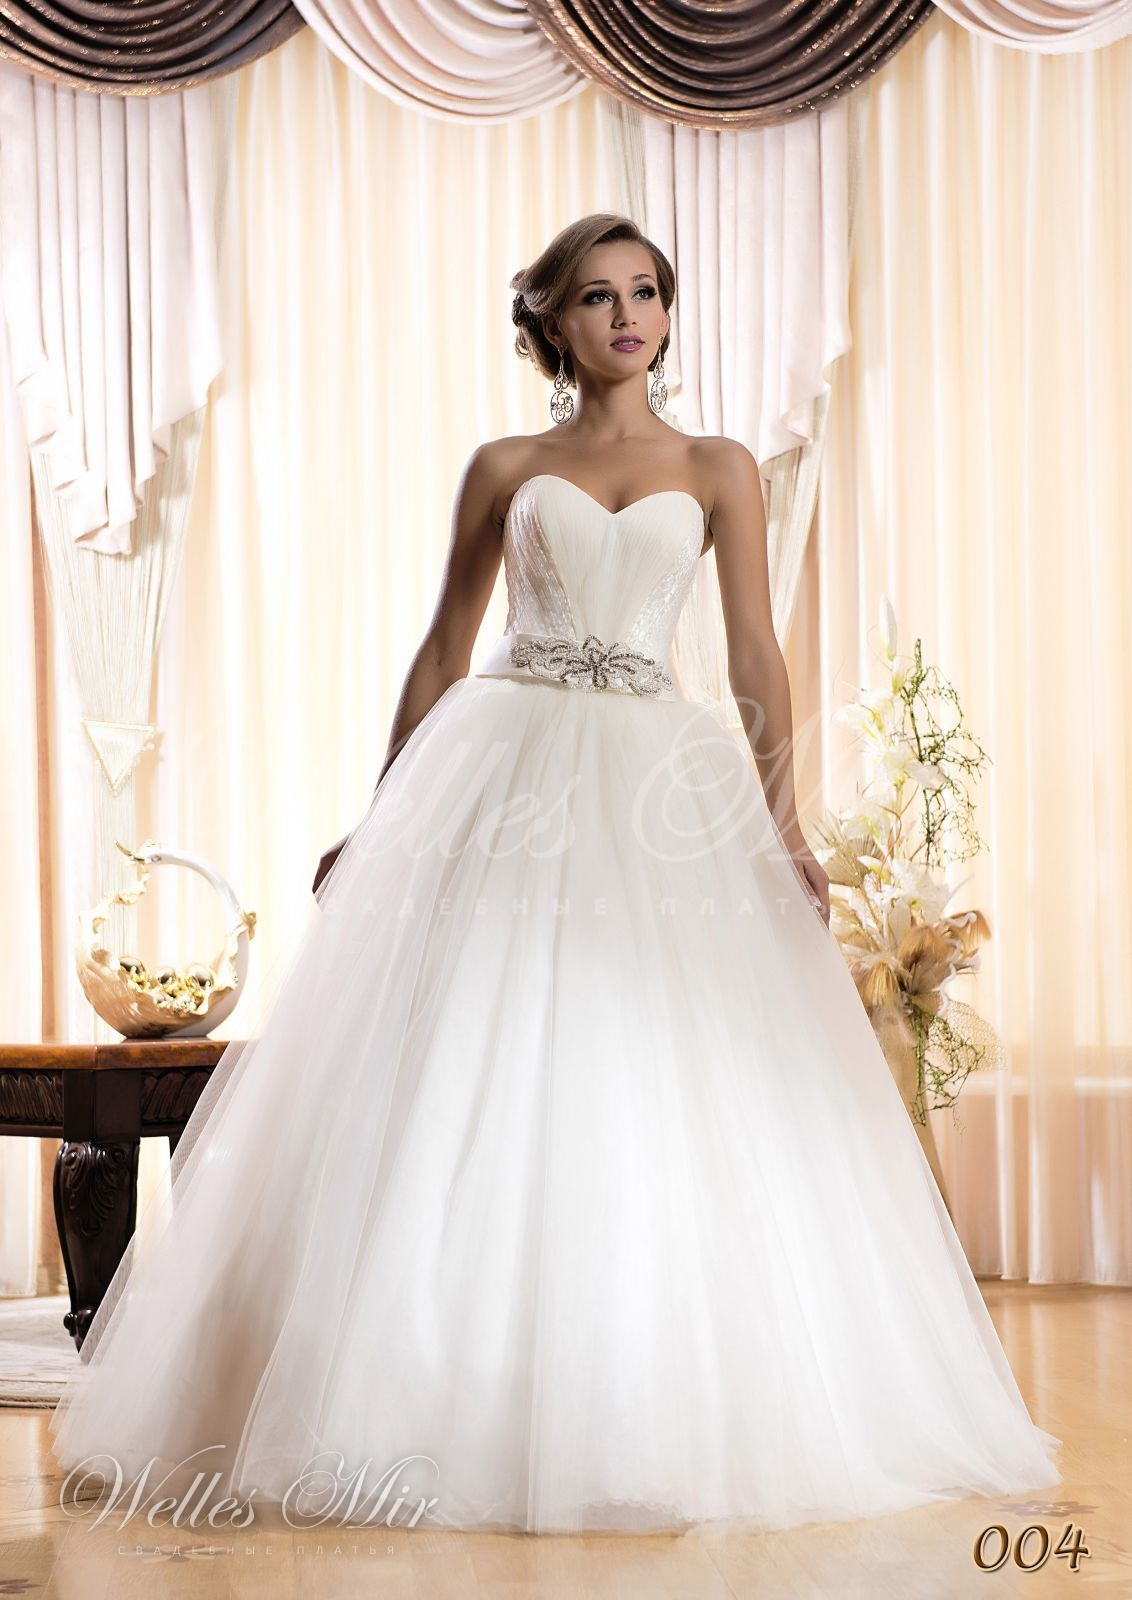 Wedding dresses 004